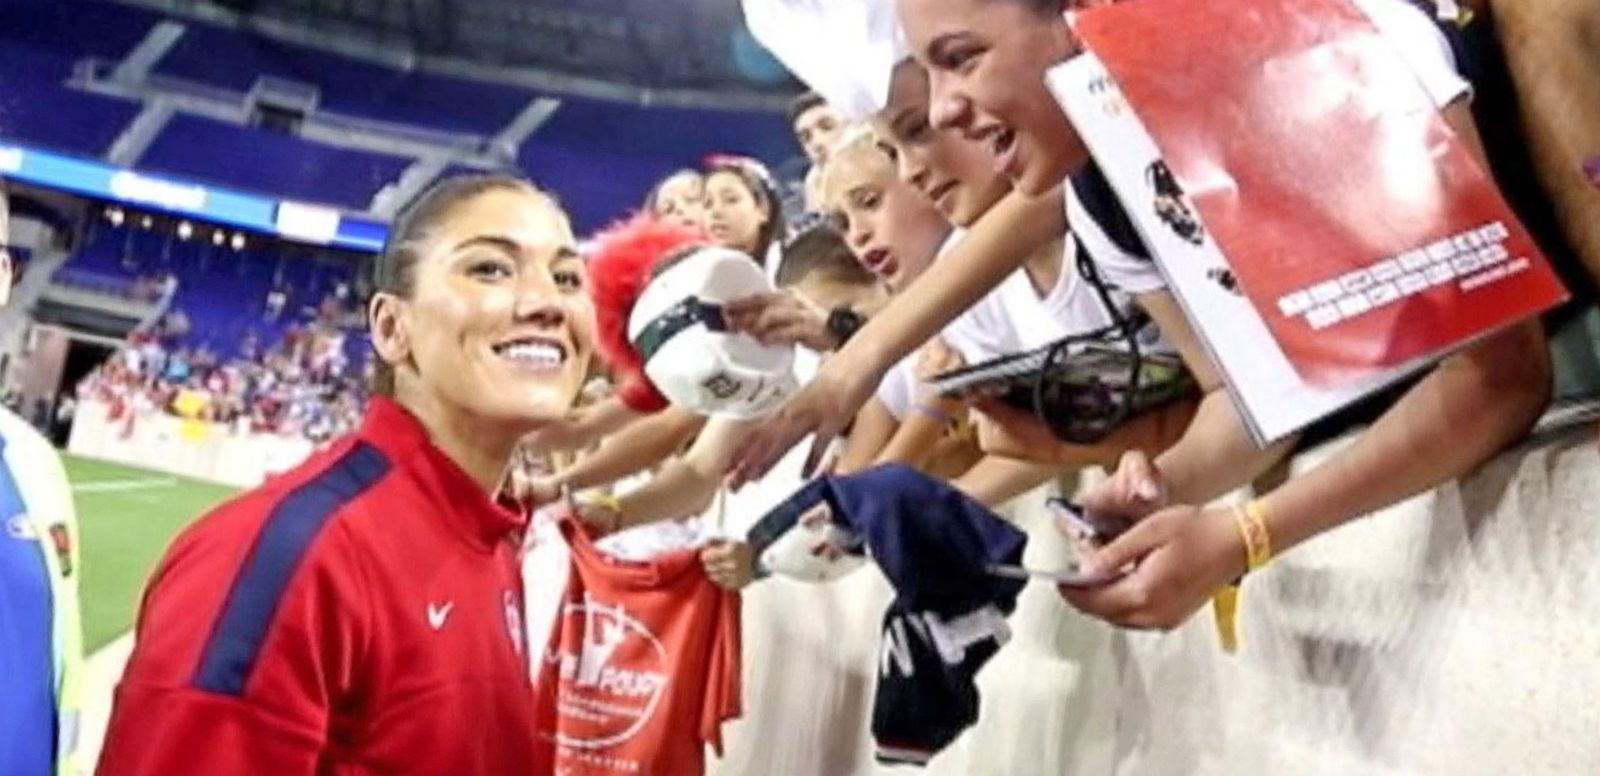 VIDEO: Hope Solo Weighs In on Potential 2016 Summer Olympics Boycott Due to Zika Virus